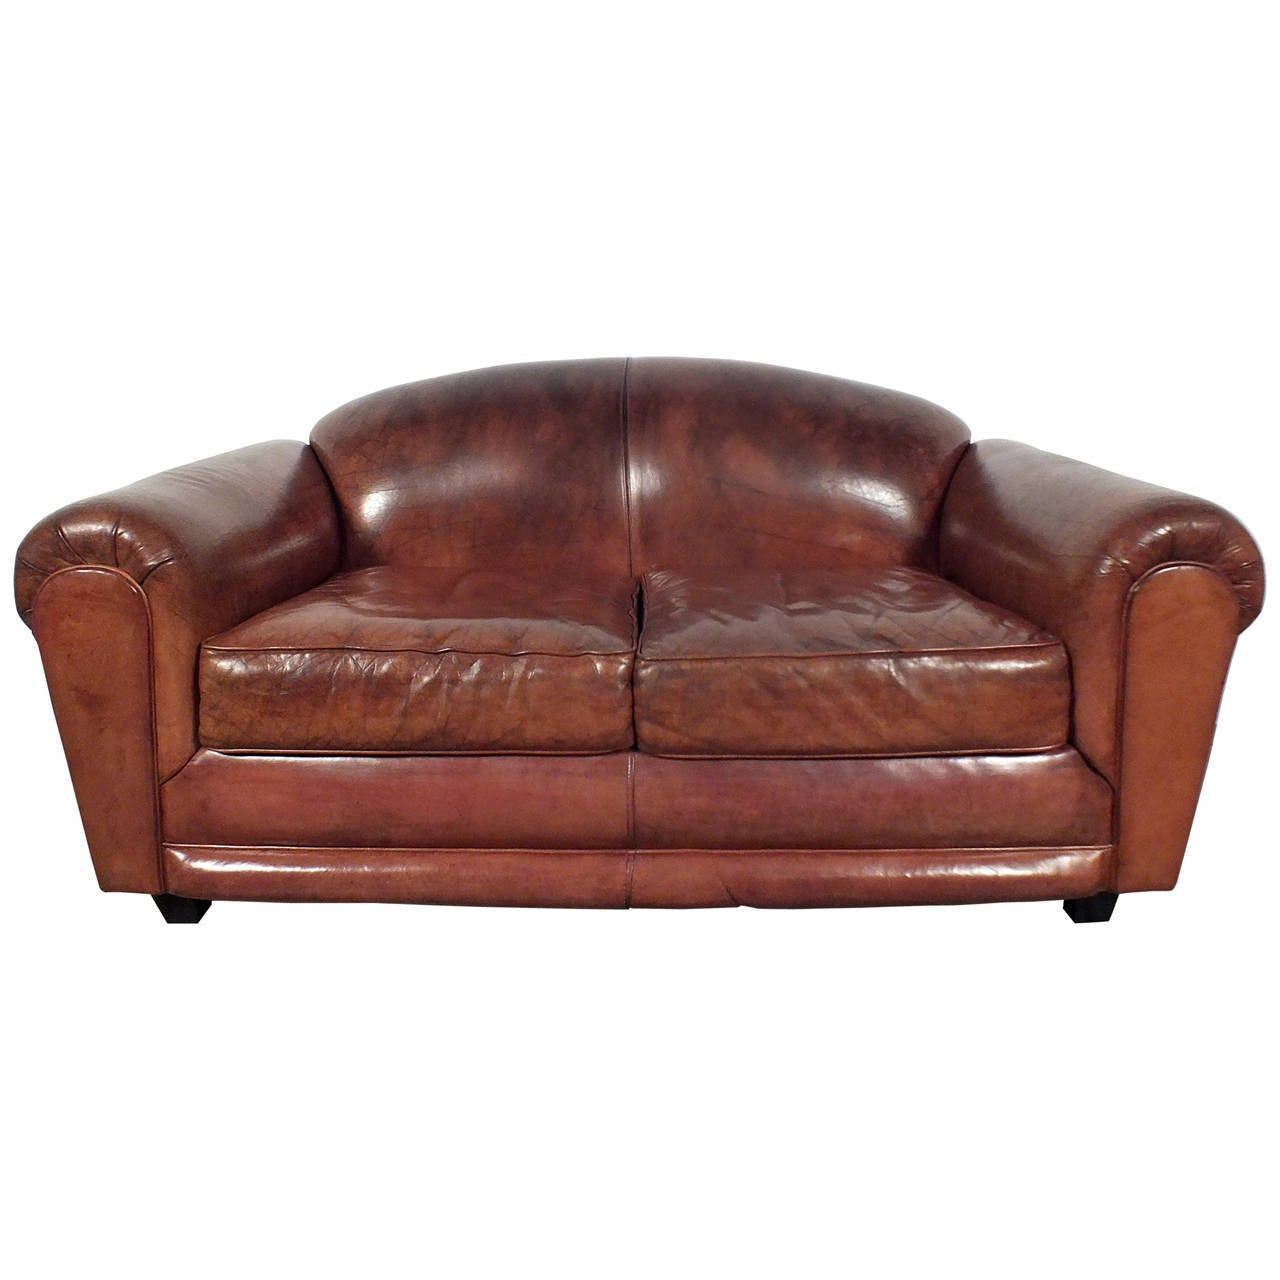 vintage 1960s modern small club leather sofa at 1stdibs